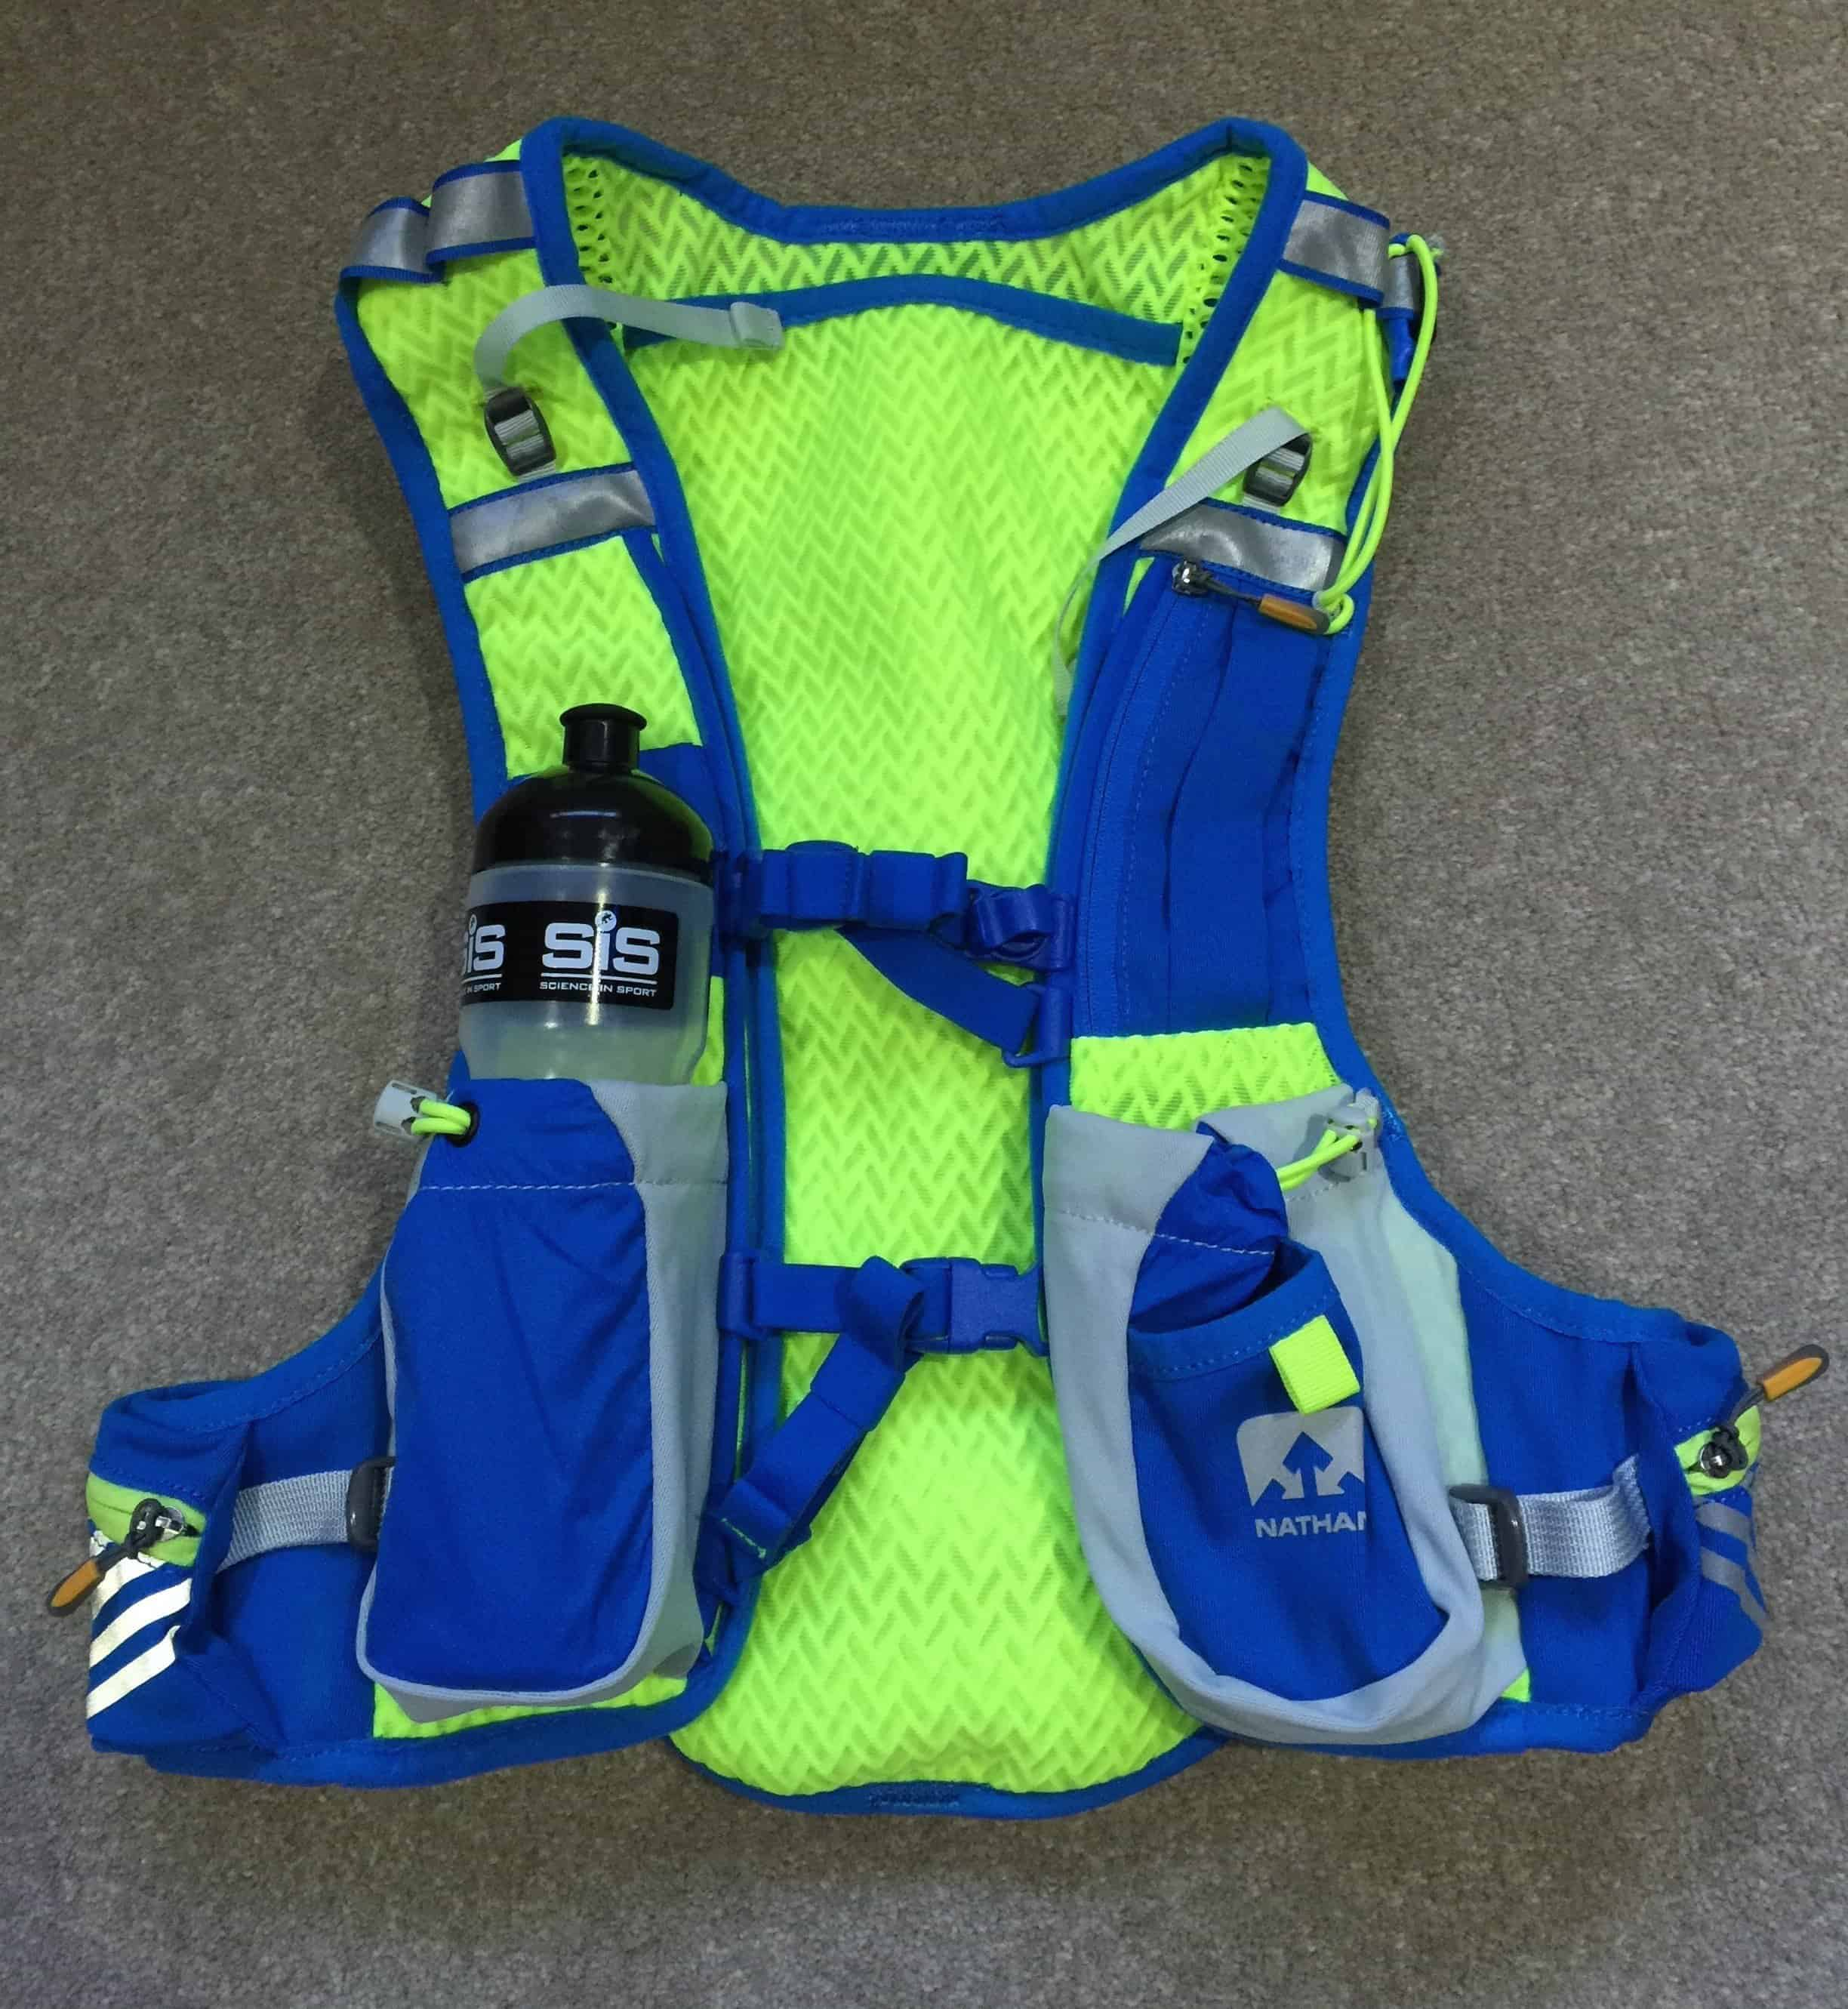 Nathan VaporCloud Hydration Vest Review